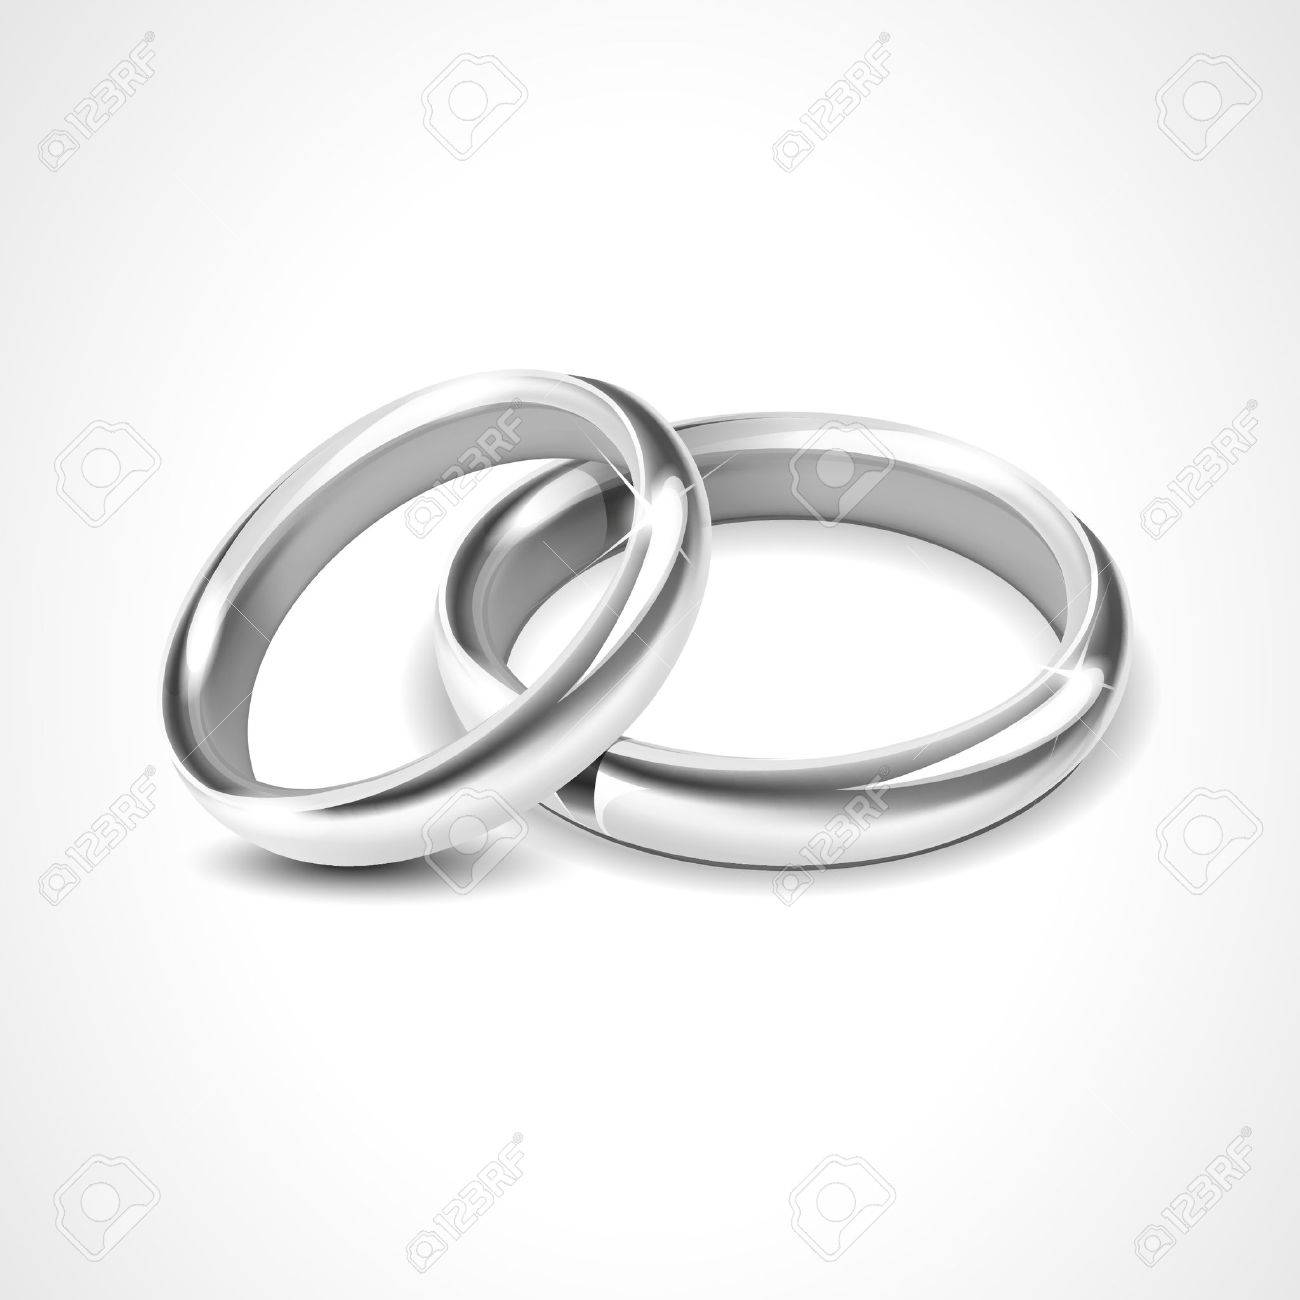 Silver Rings Isolated on White Background - 34372480